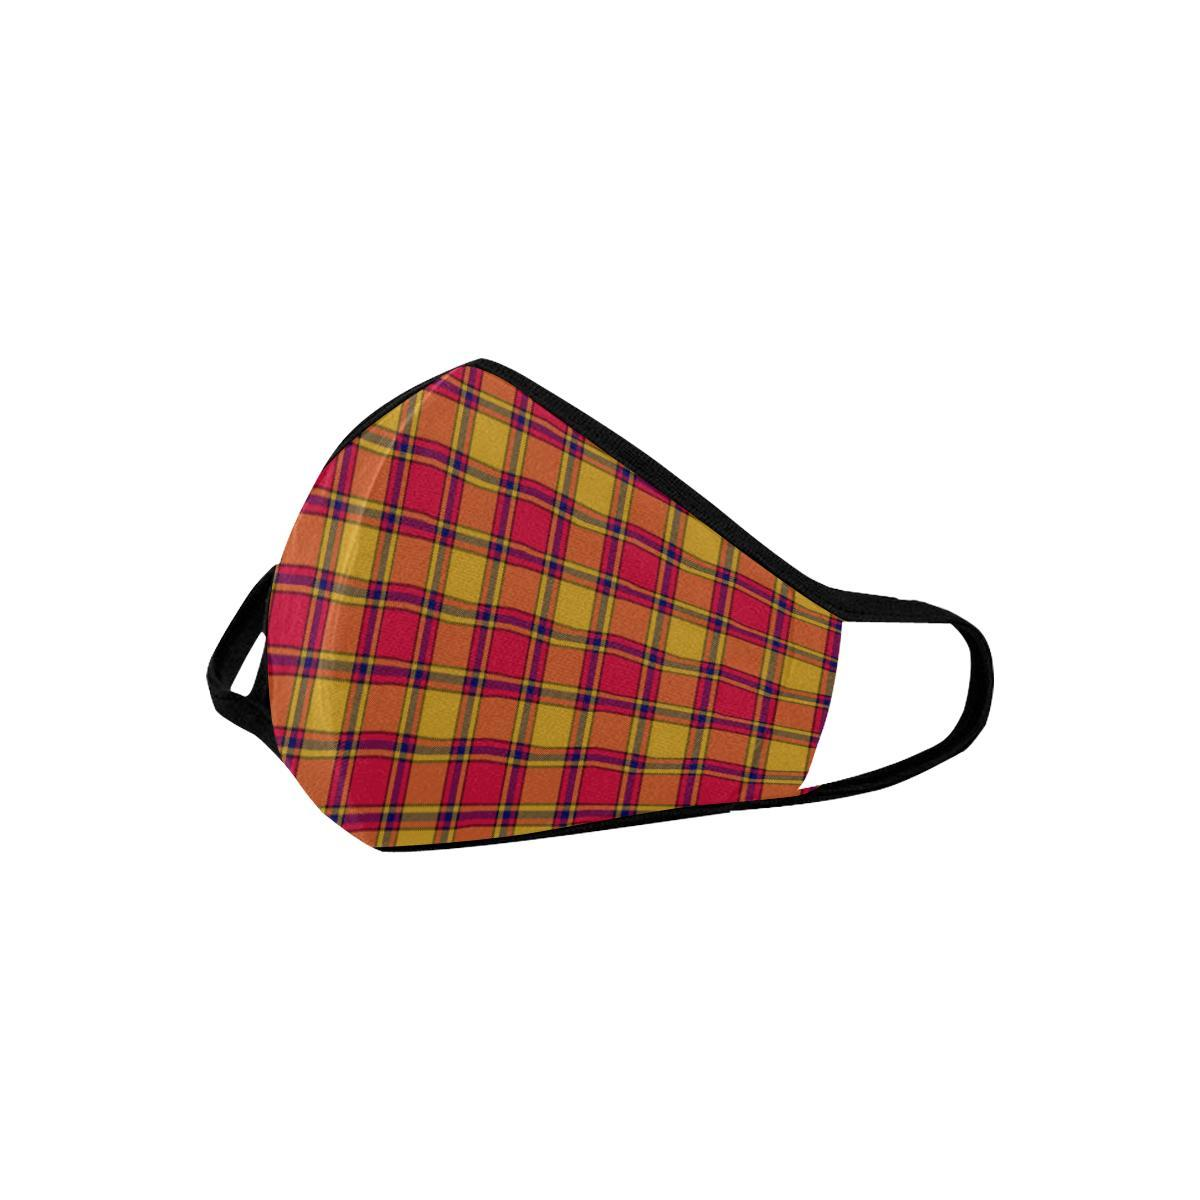 Scrymgeour Tartan Mouth Mask With Filter | scottishclans.co